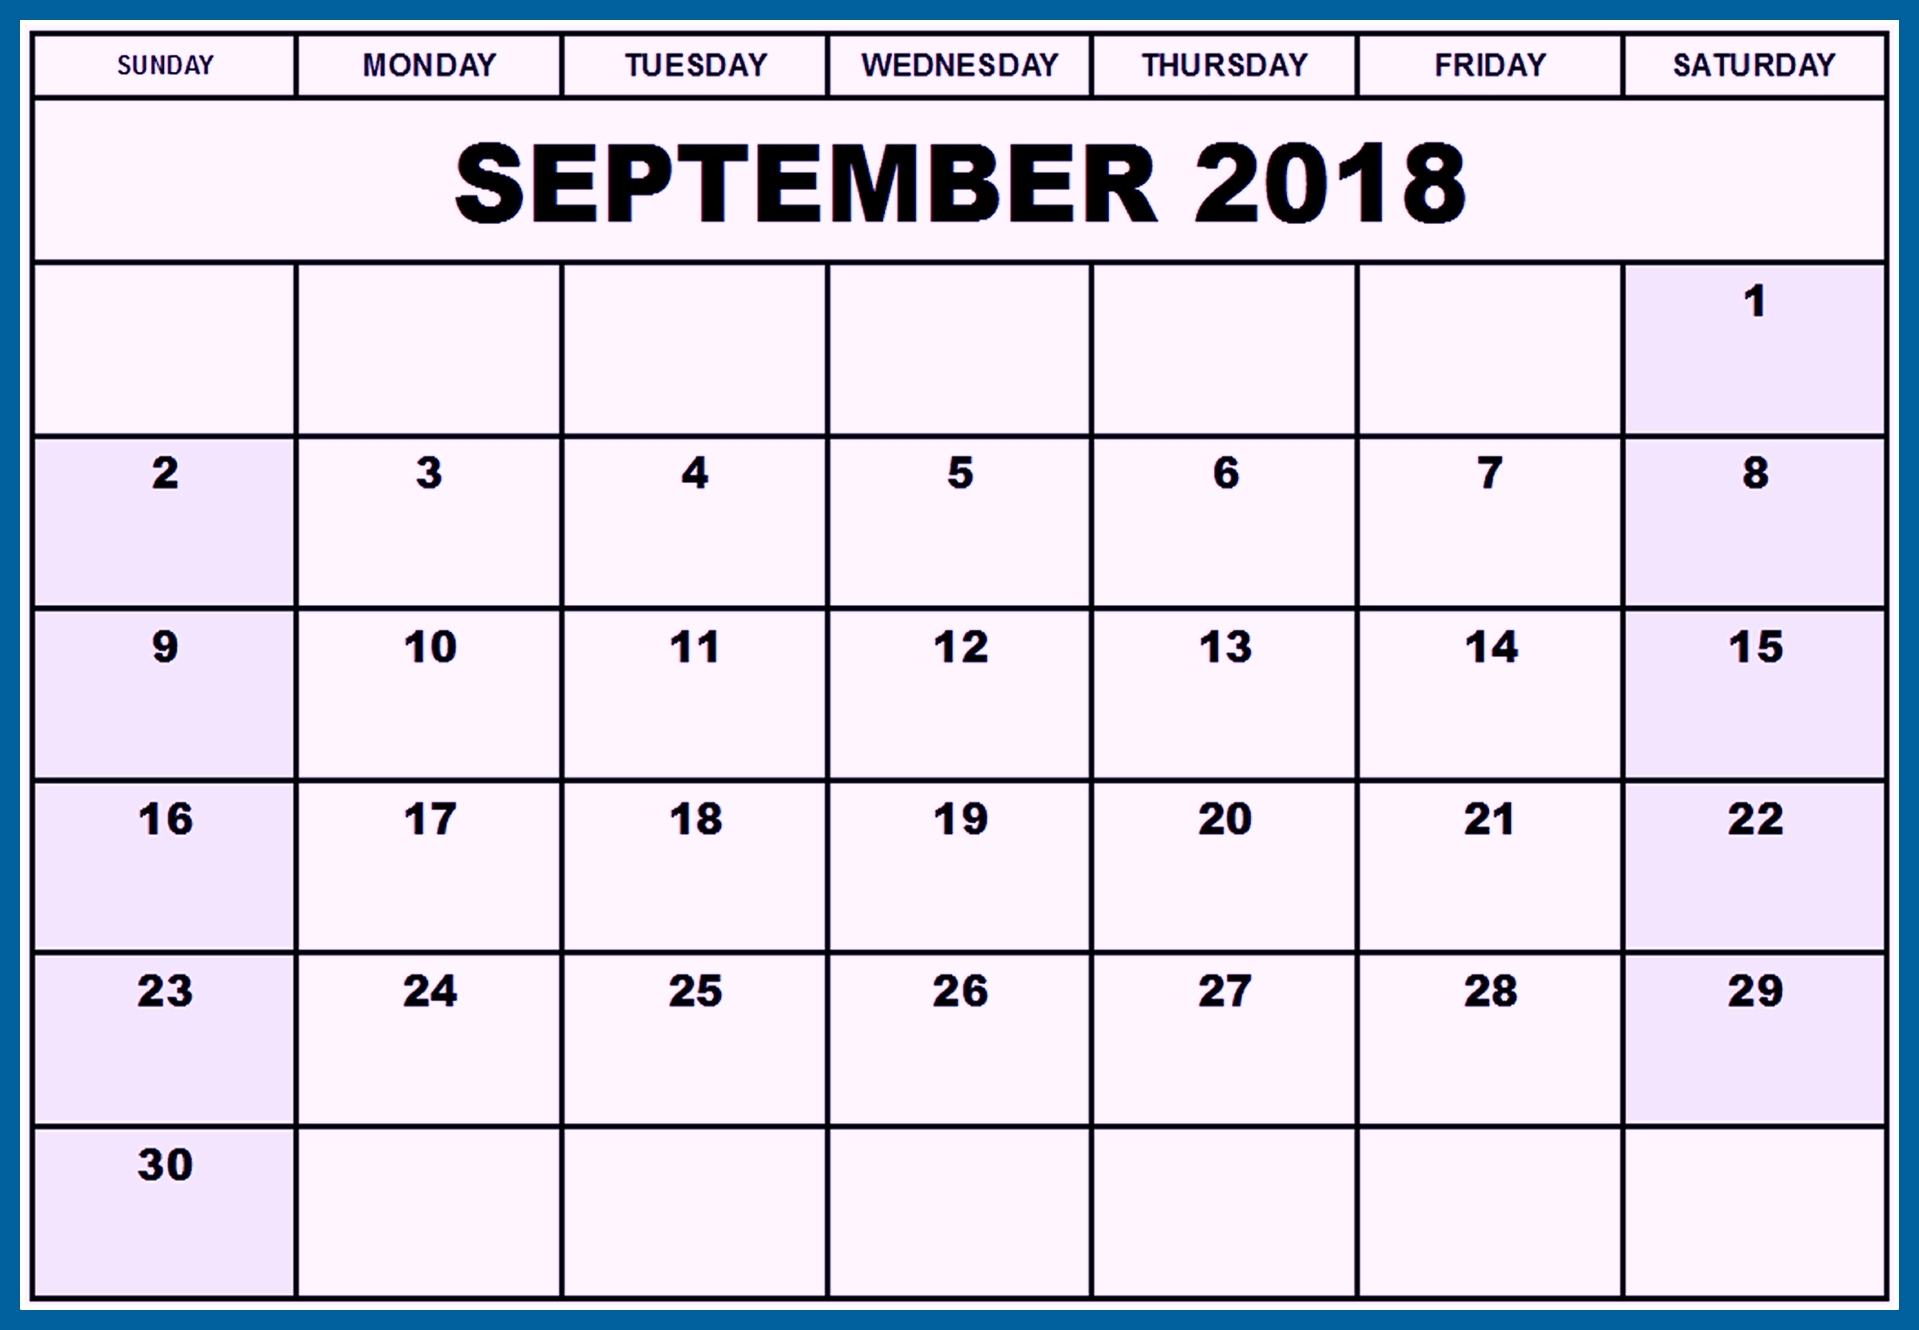 september 2018 calendar excel sheet